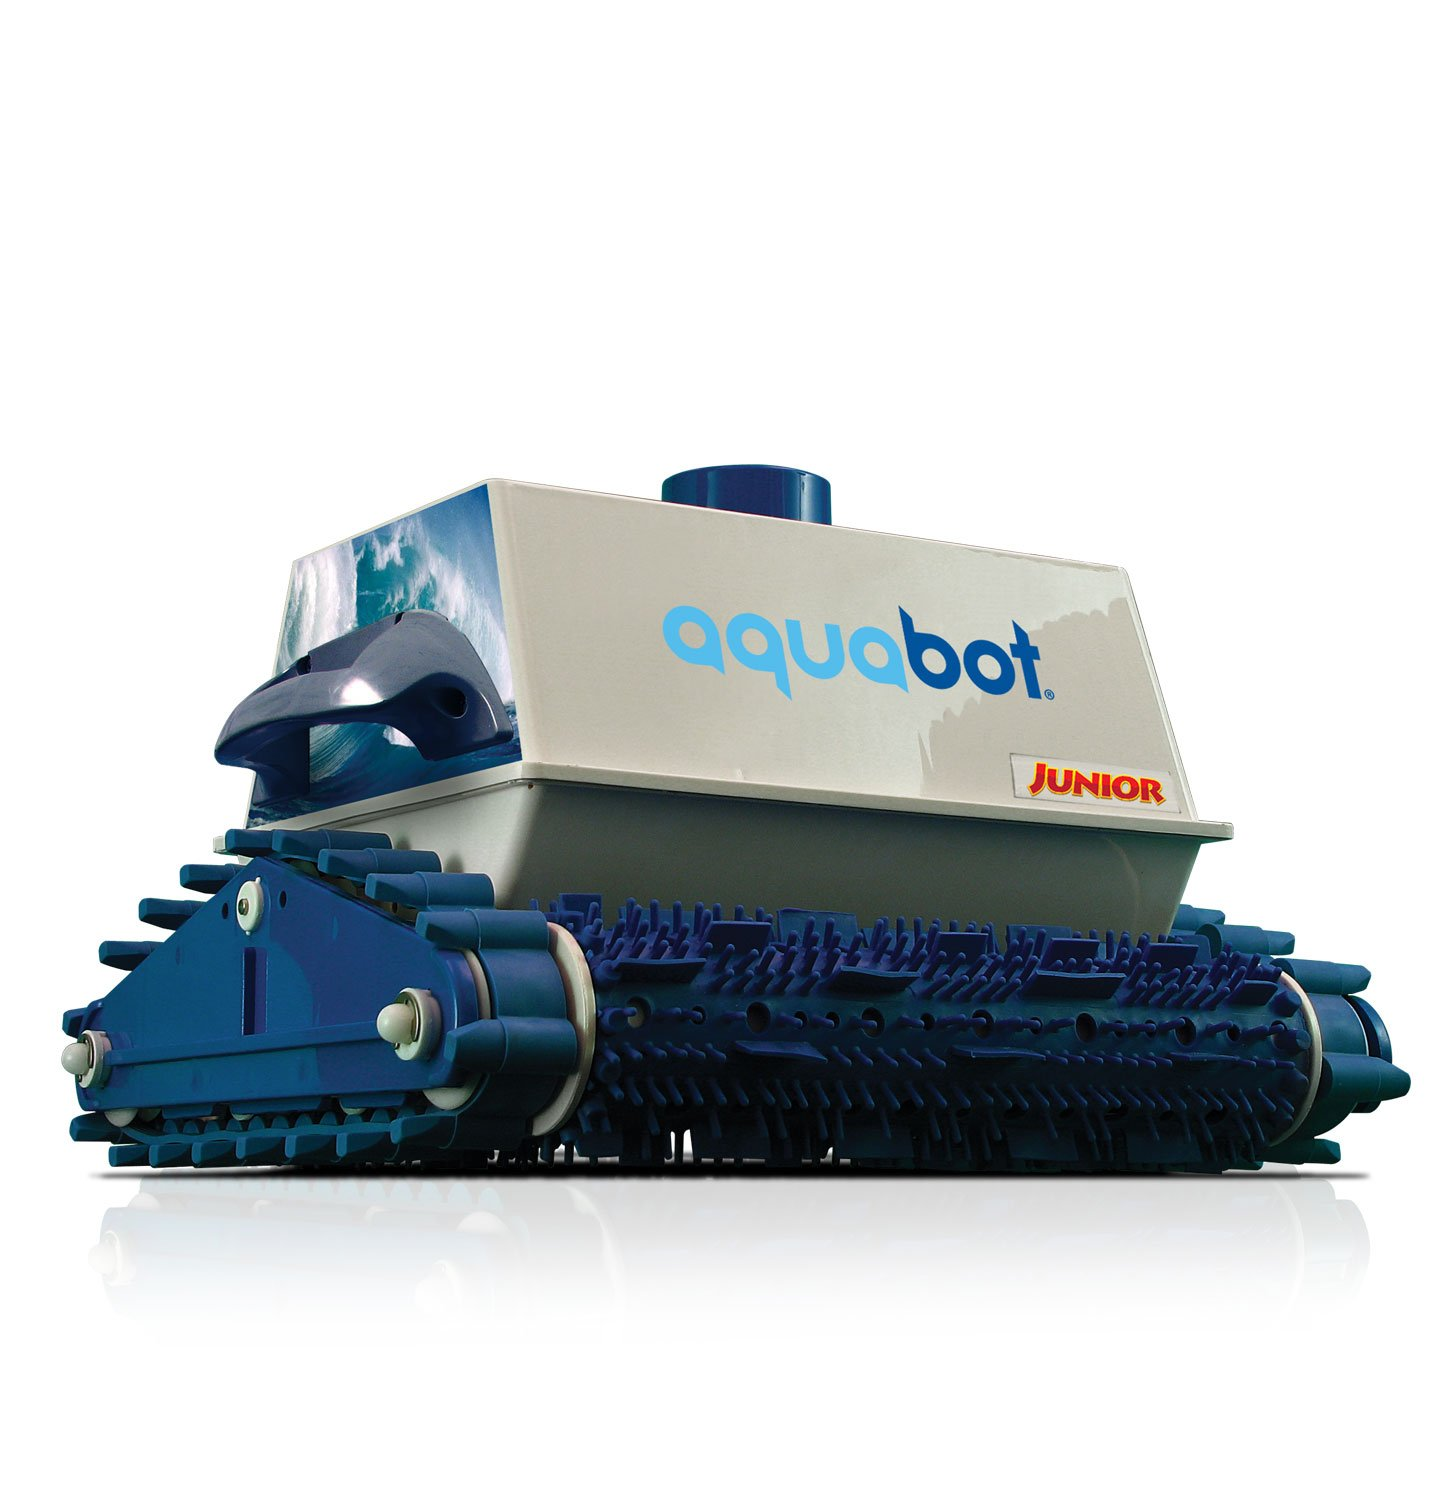 Aquabot Junior Automatic Robotic In Ground Pool Cleaner Under $450